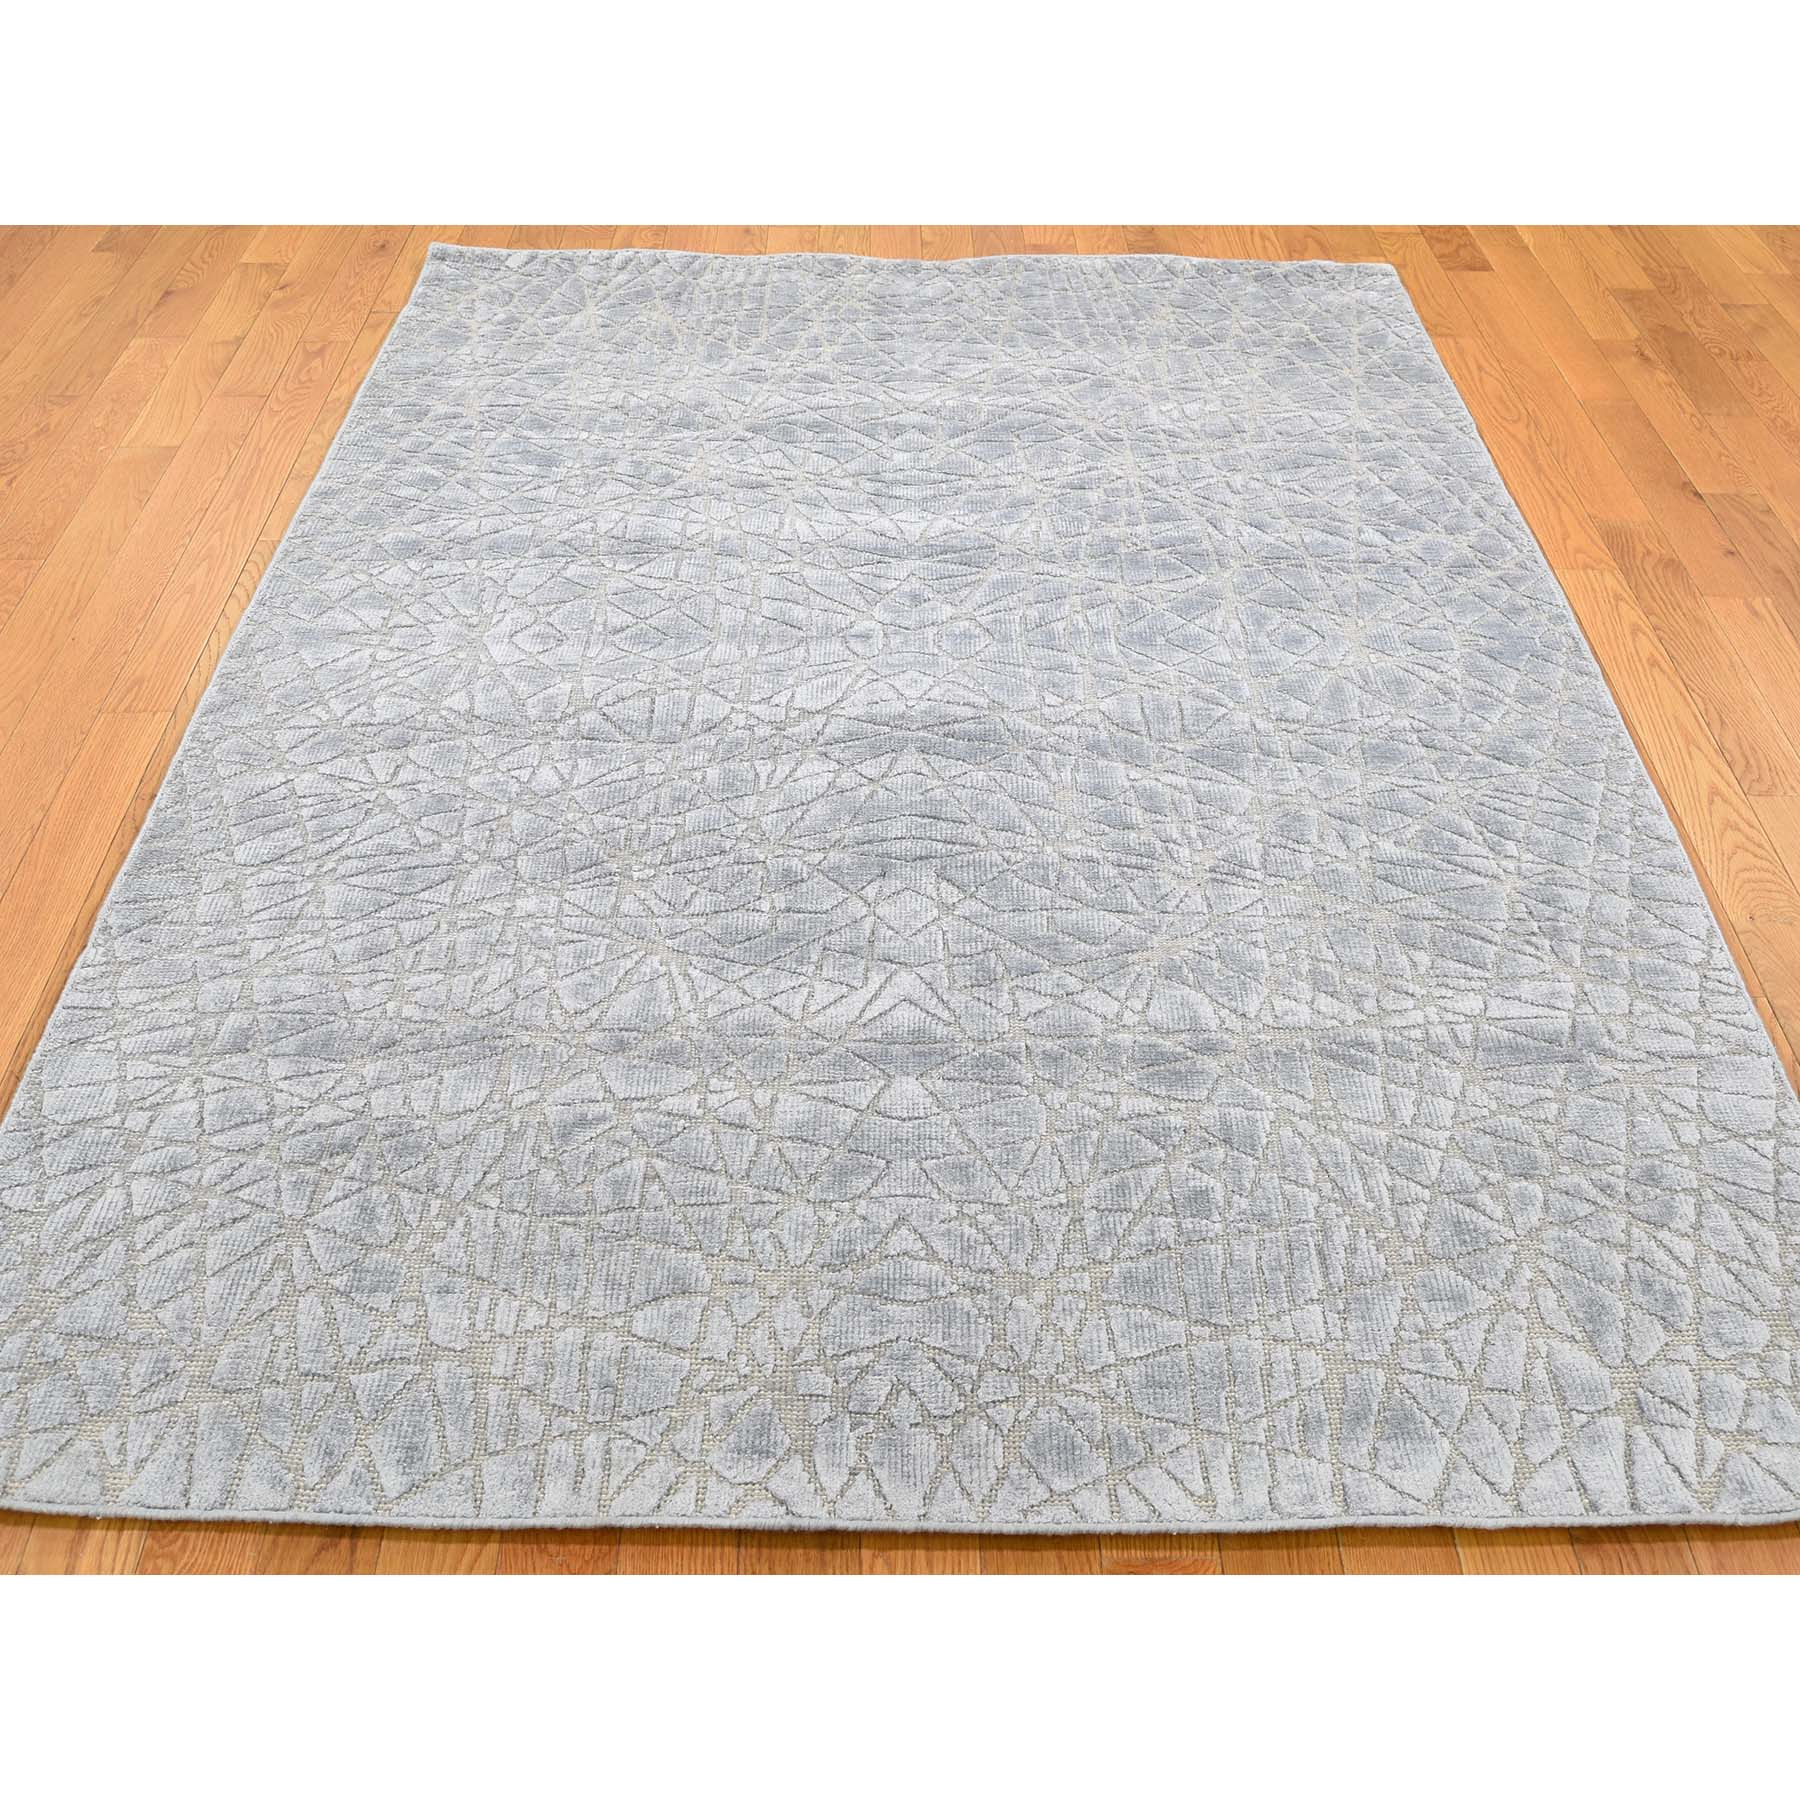 5-1 x7- Flat Pile with Raised Silk Hand Knotted Tone on Tone Oriental Runner Rug